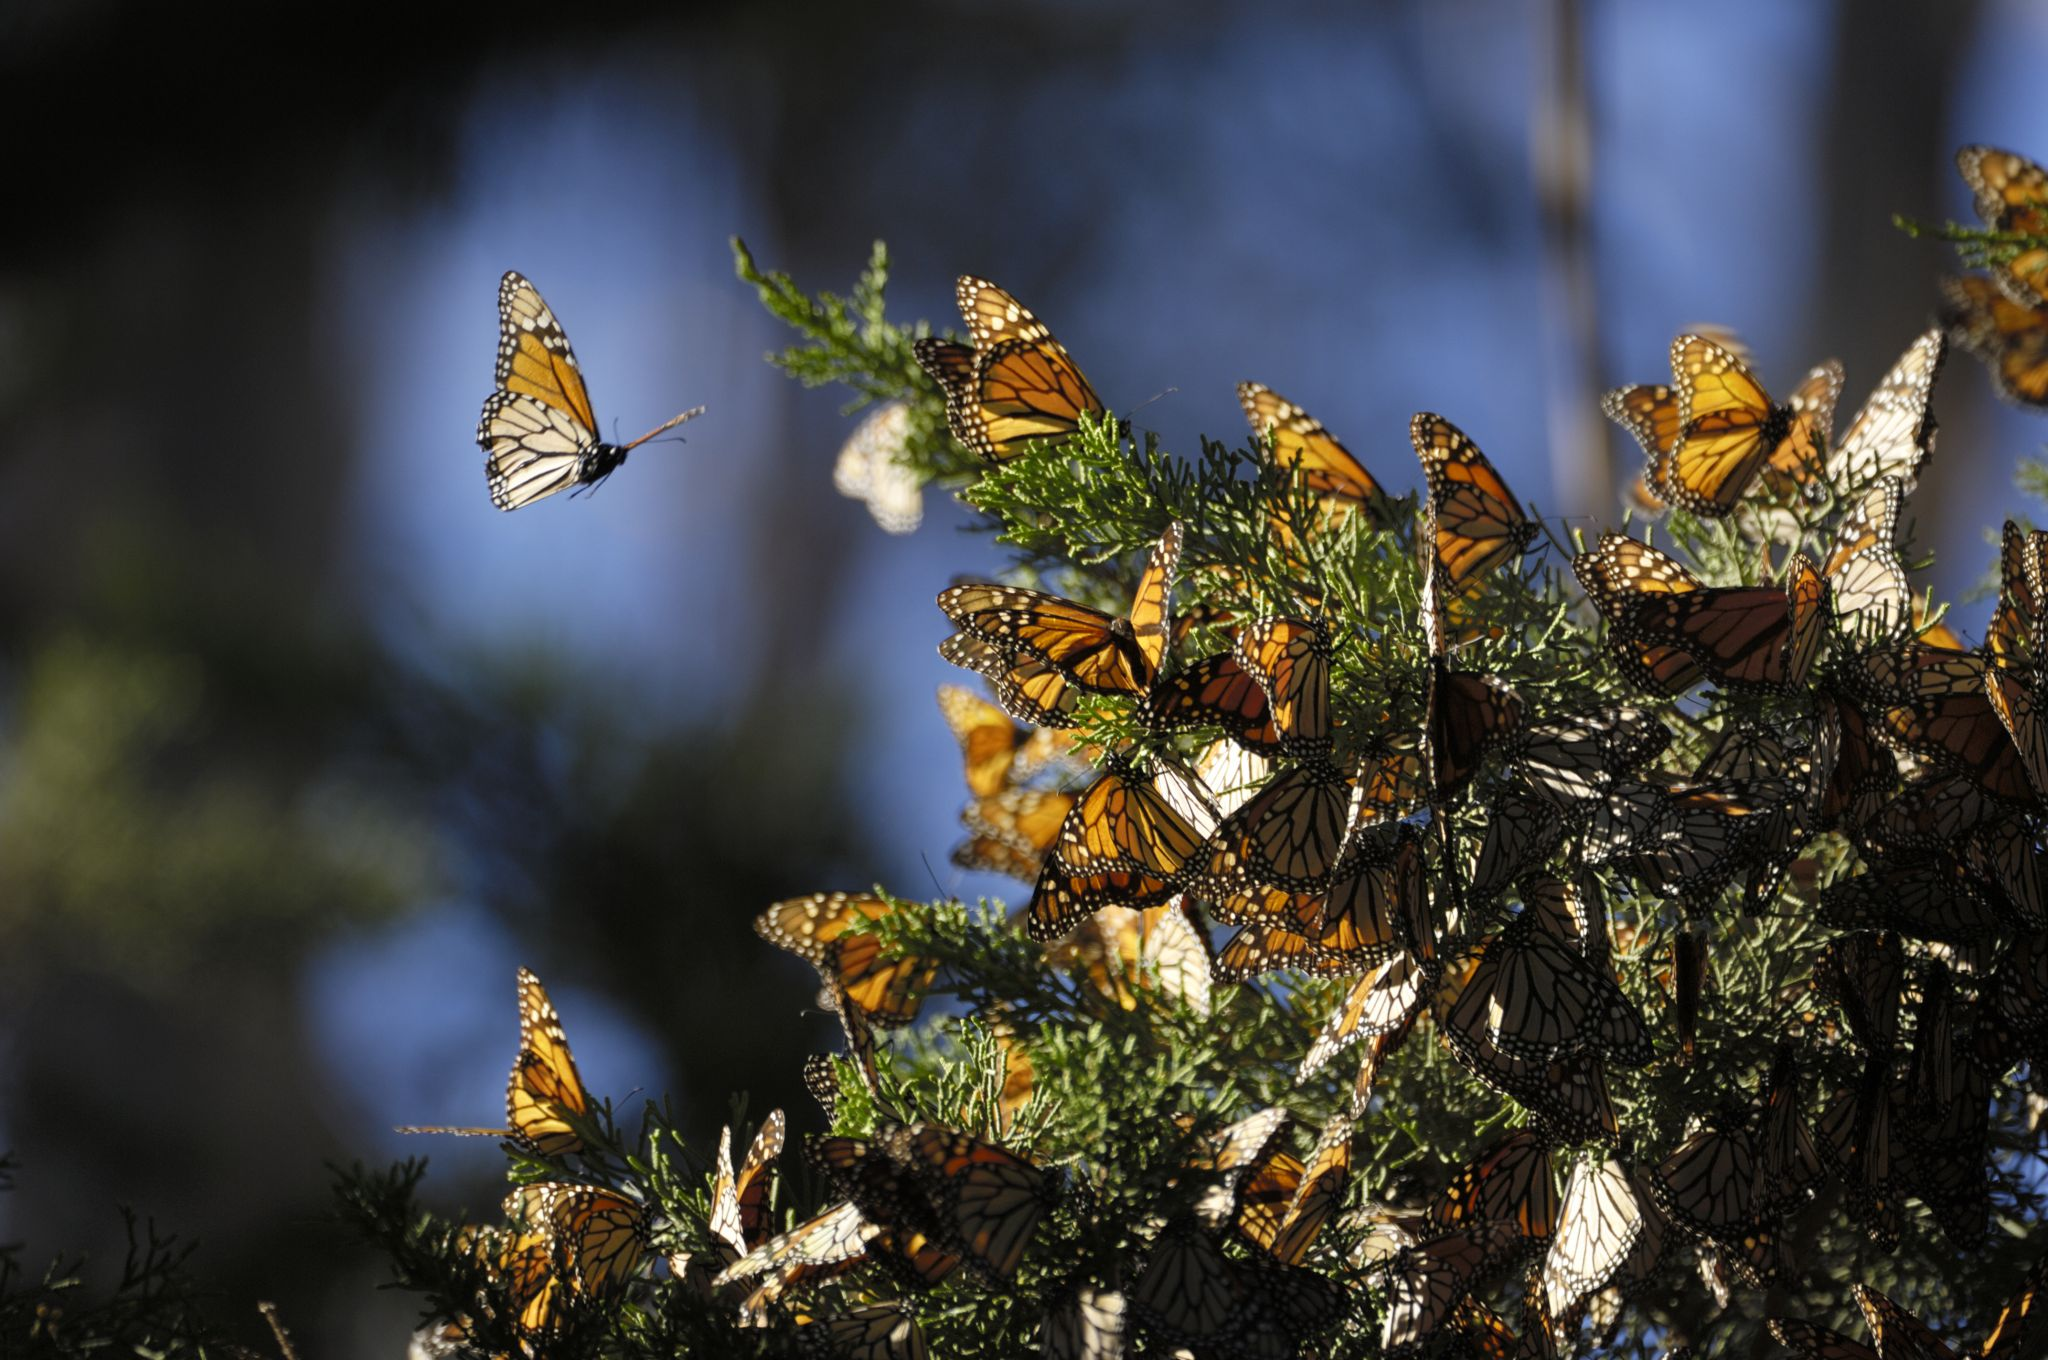 Report: Bay Area county's western monarch butterfly population hits record low, only 200 counted